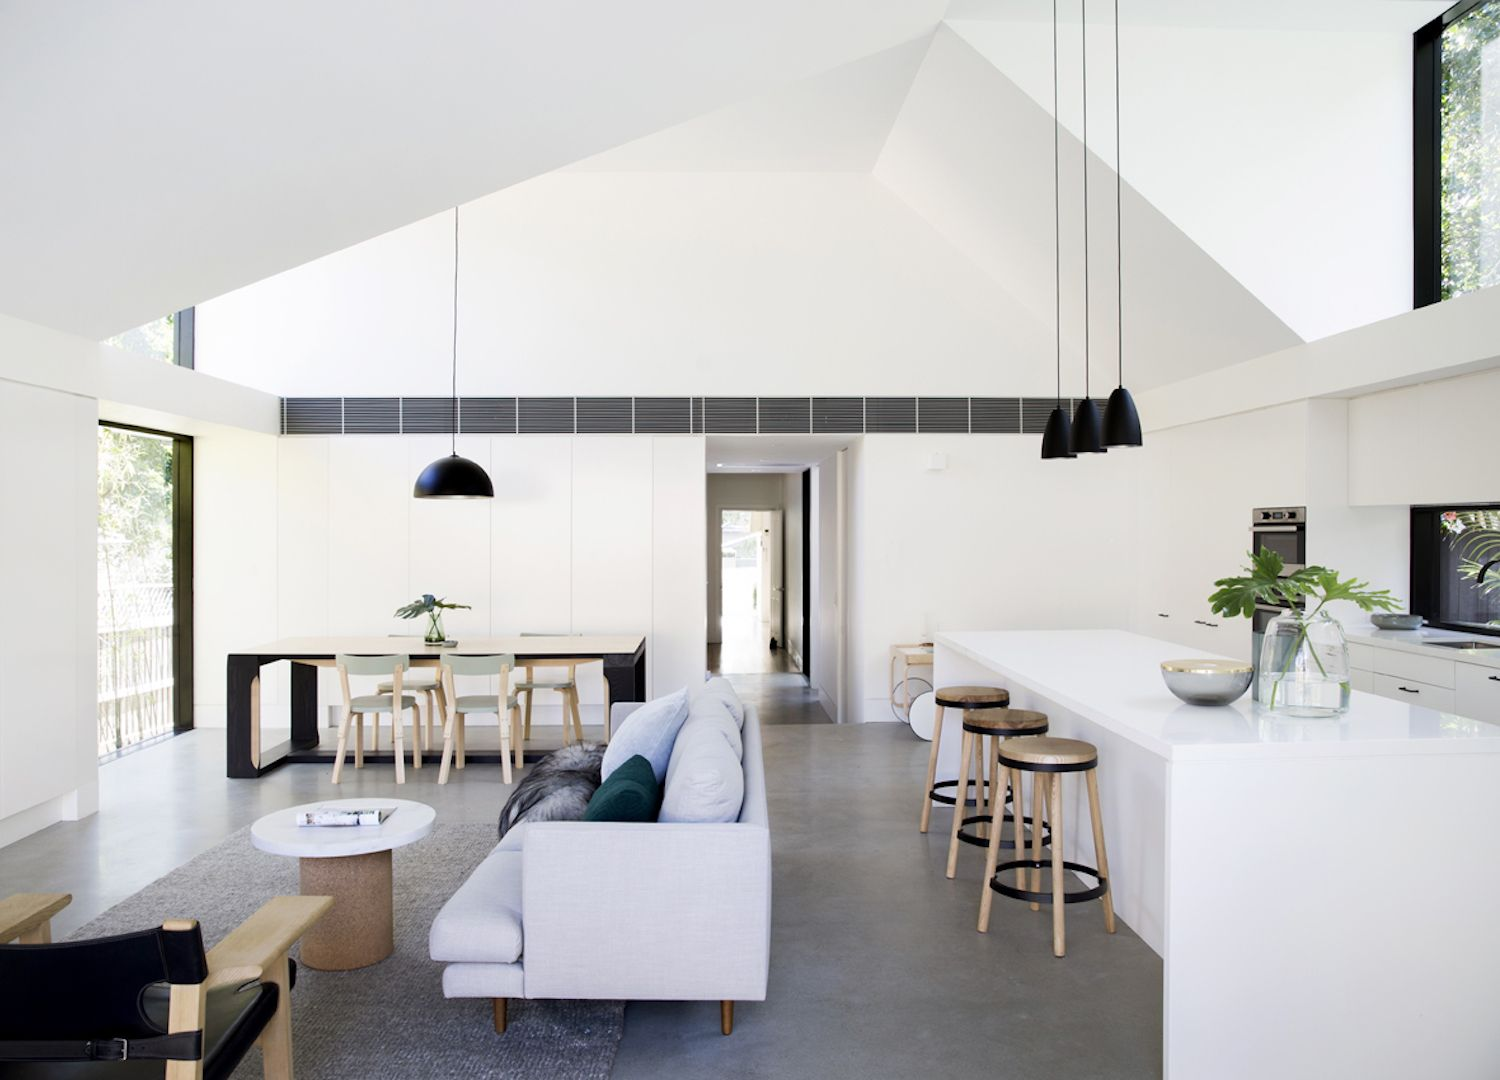 Minimal Style House allen key housearchitect prineas | est living | interiors